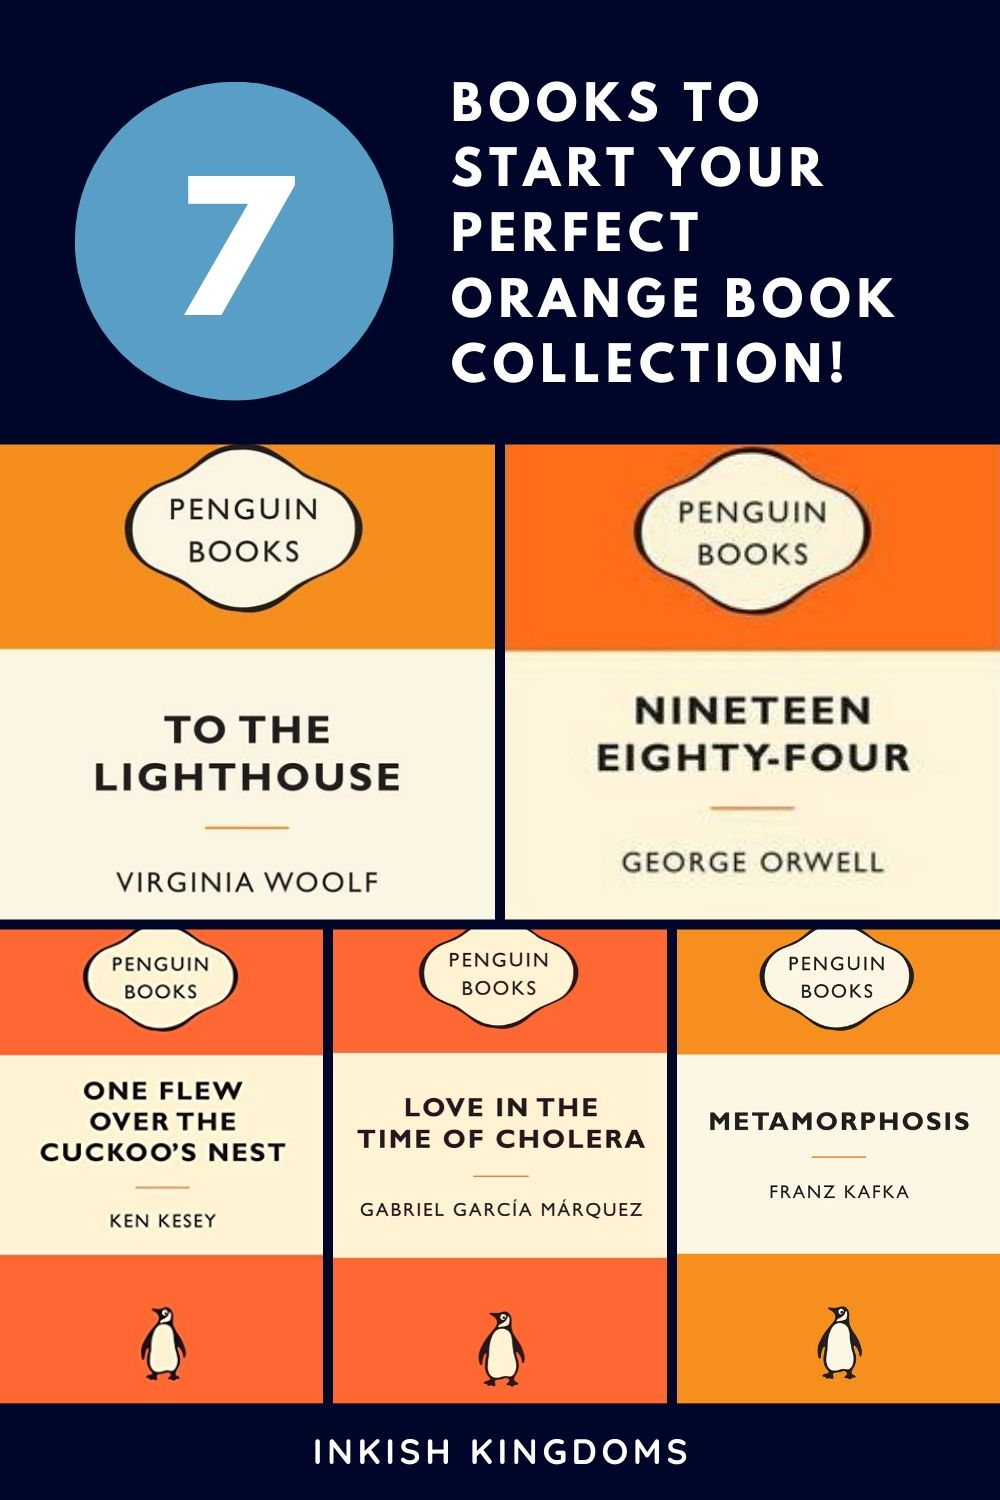 7 books to start your perfect orange book collection!.